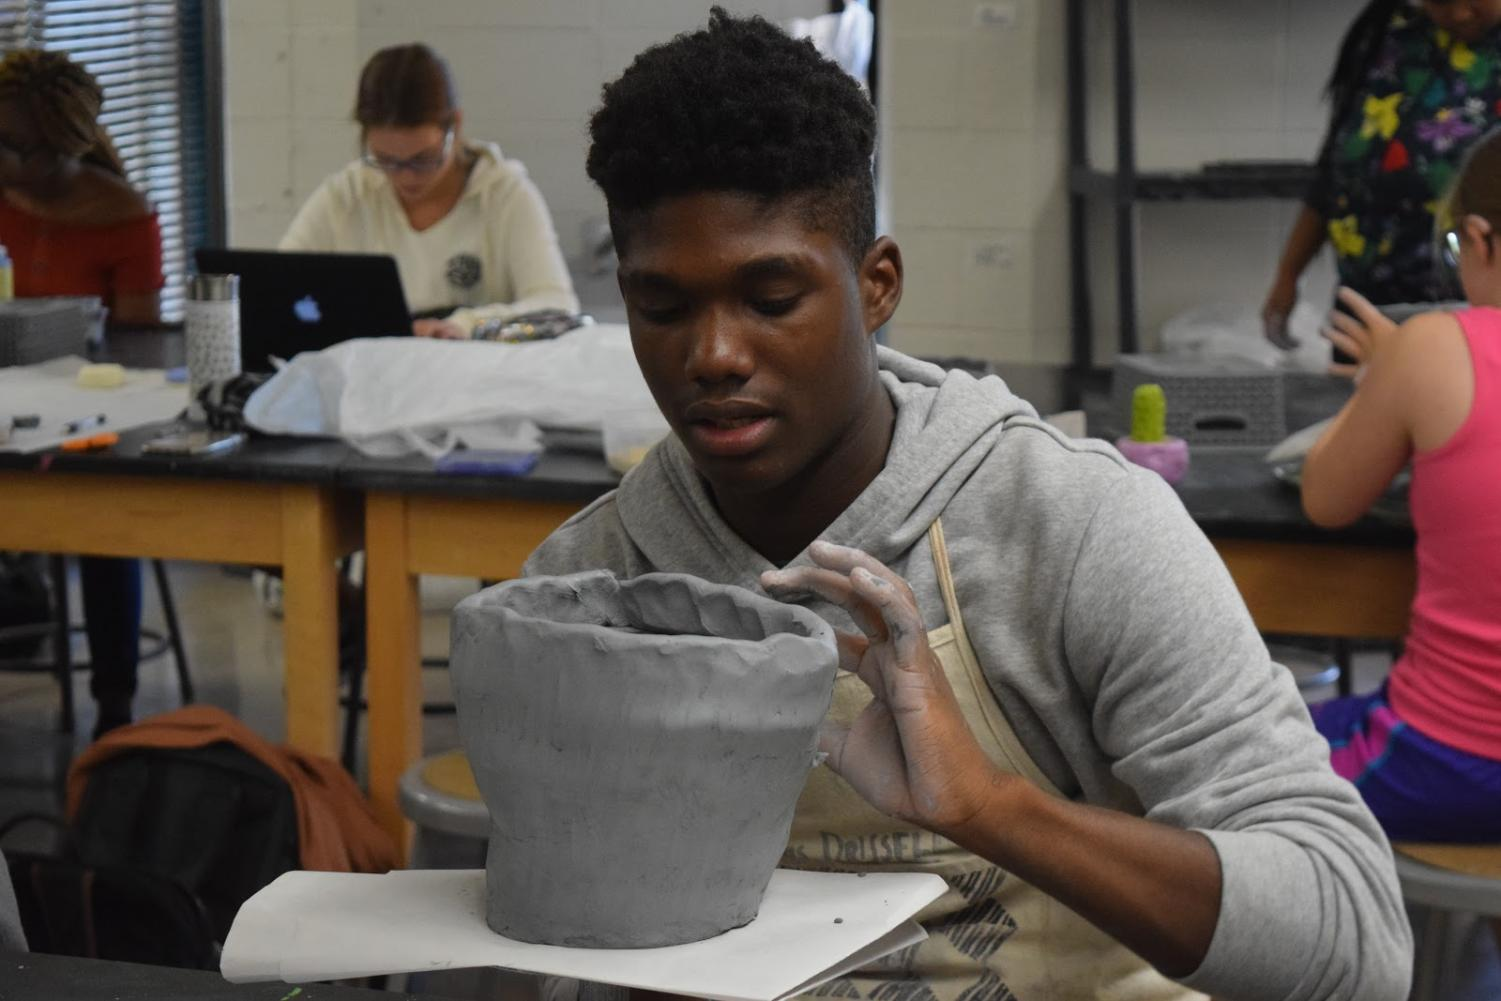 """Molding the clay, junior Ledaniel Jackson works on building the base of his ceramic cactus. After the class completed their donuts project, they began creating cactuses for the coil building unit. """"I think the best part about the class is having the freedom to create [ceramics] on our own,"""" Jackson said. """"It makes the class really fun."""""""